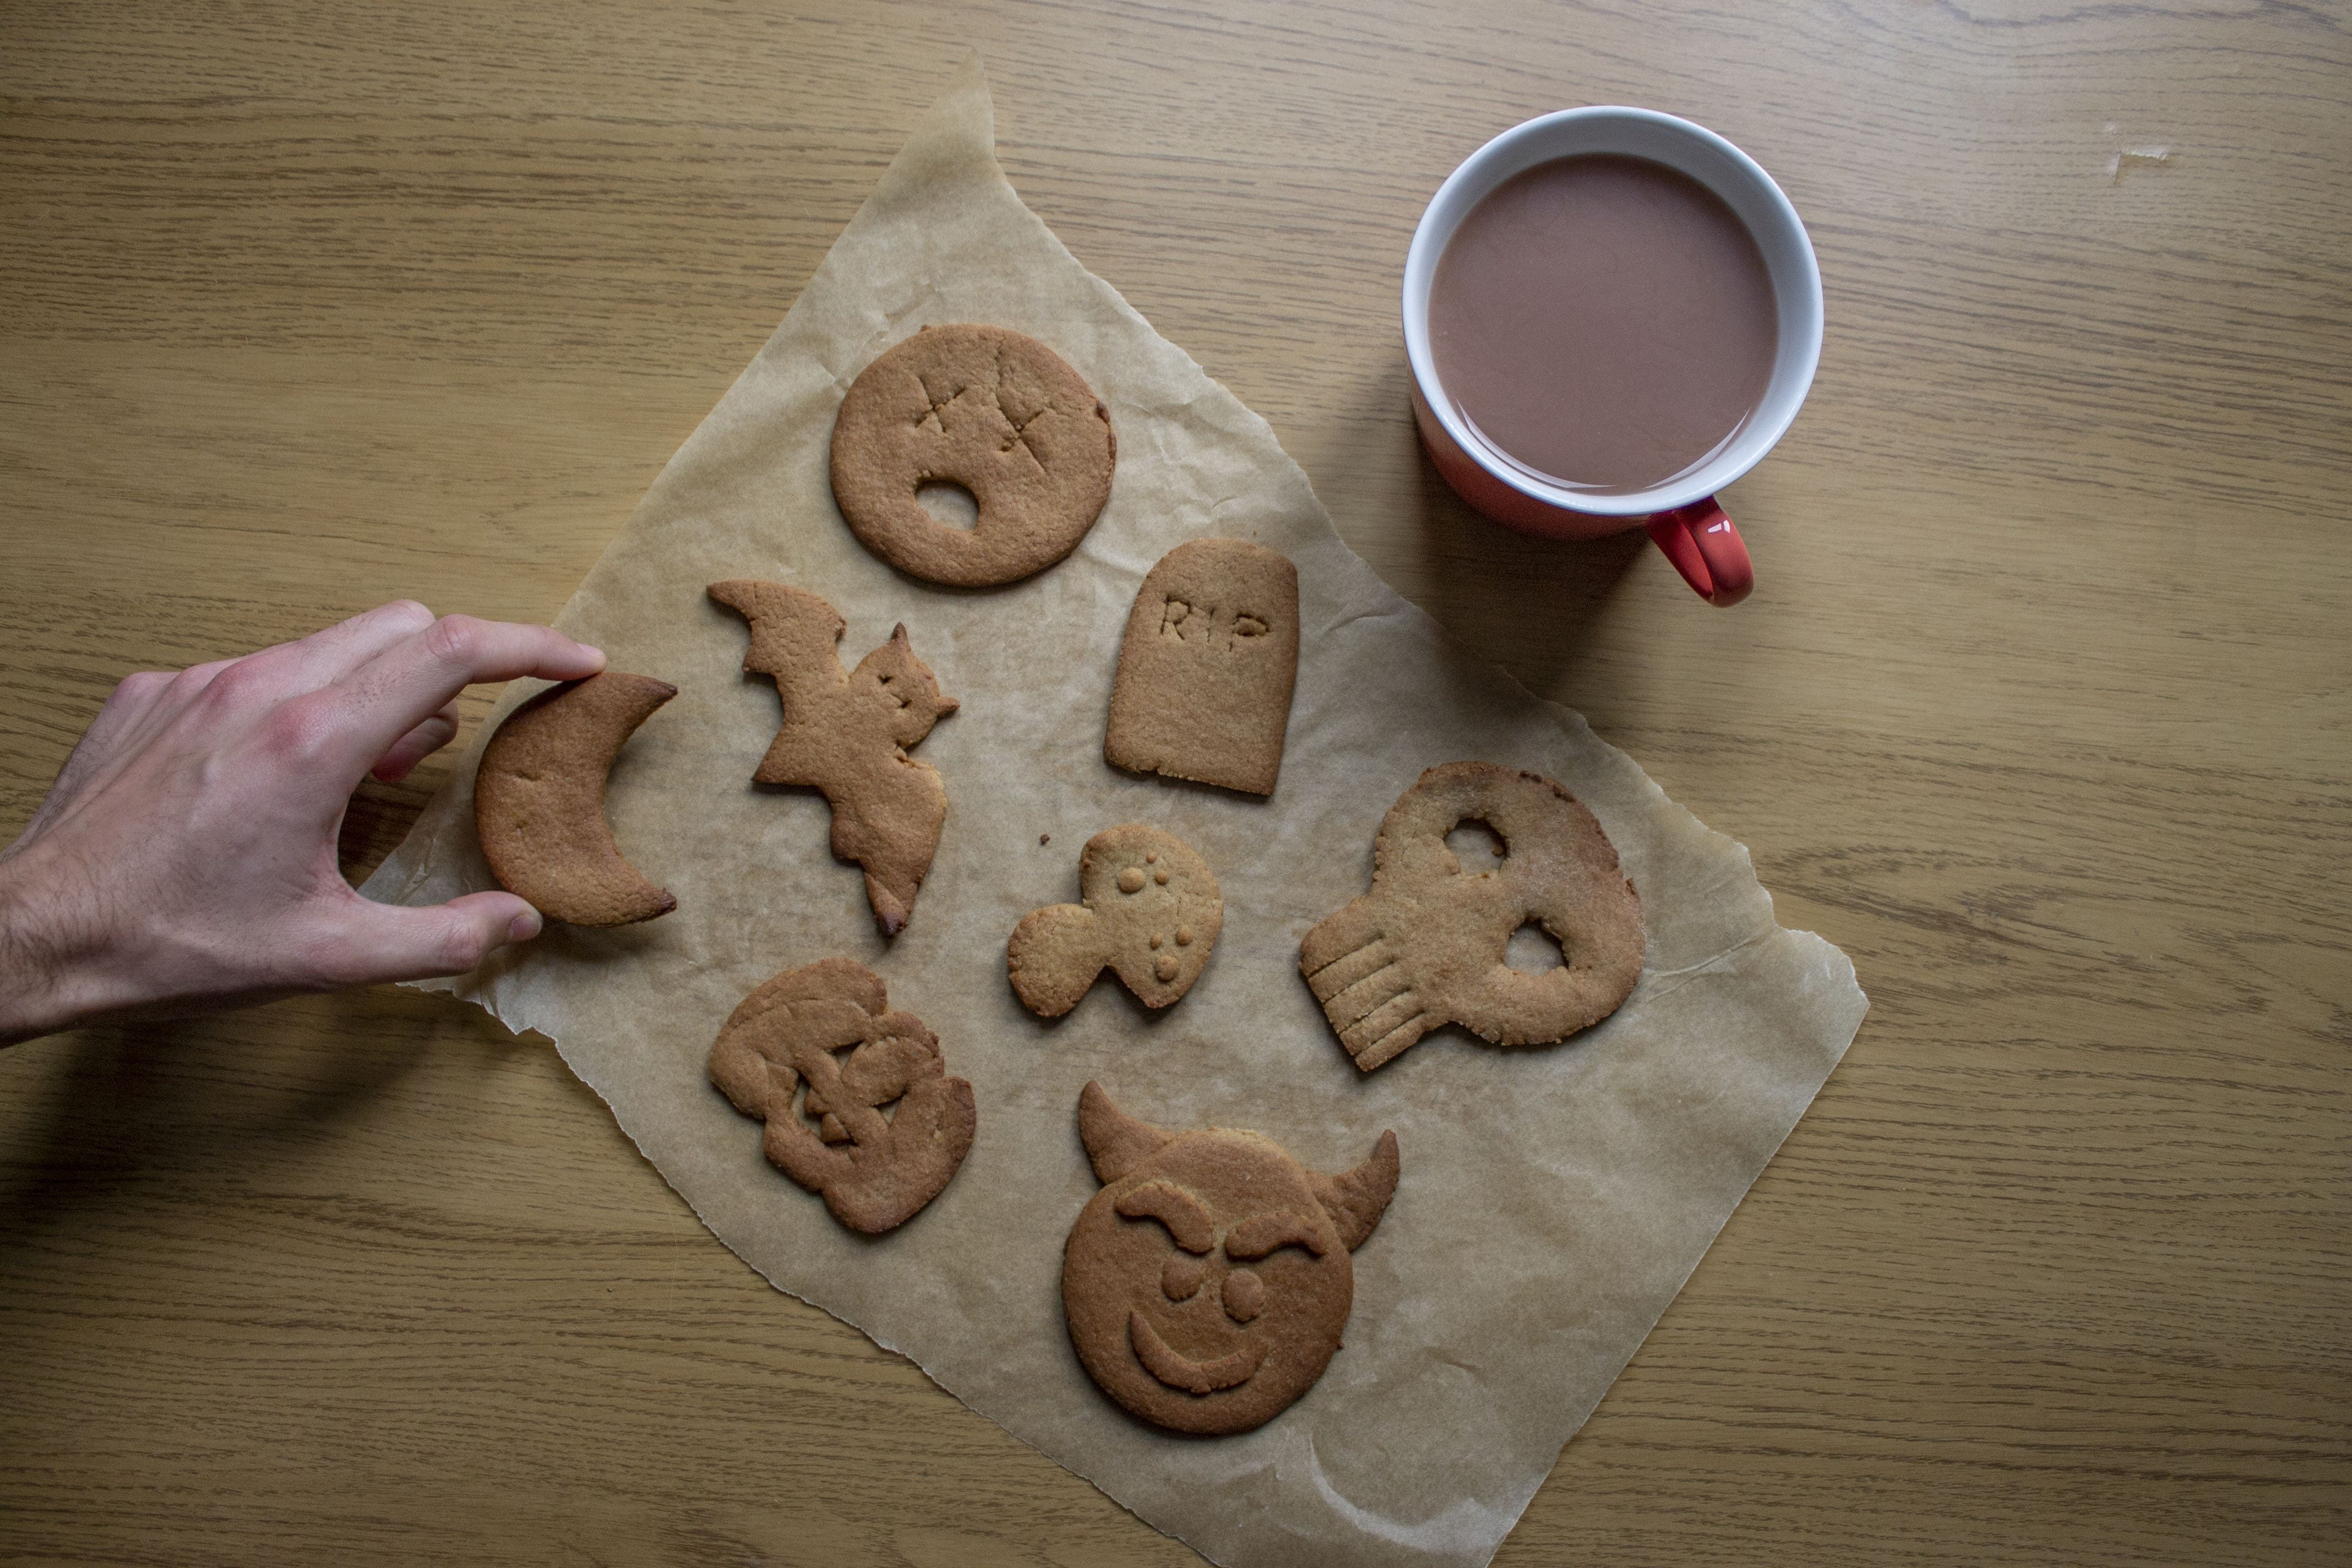 The finished cookies with a cup of tea